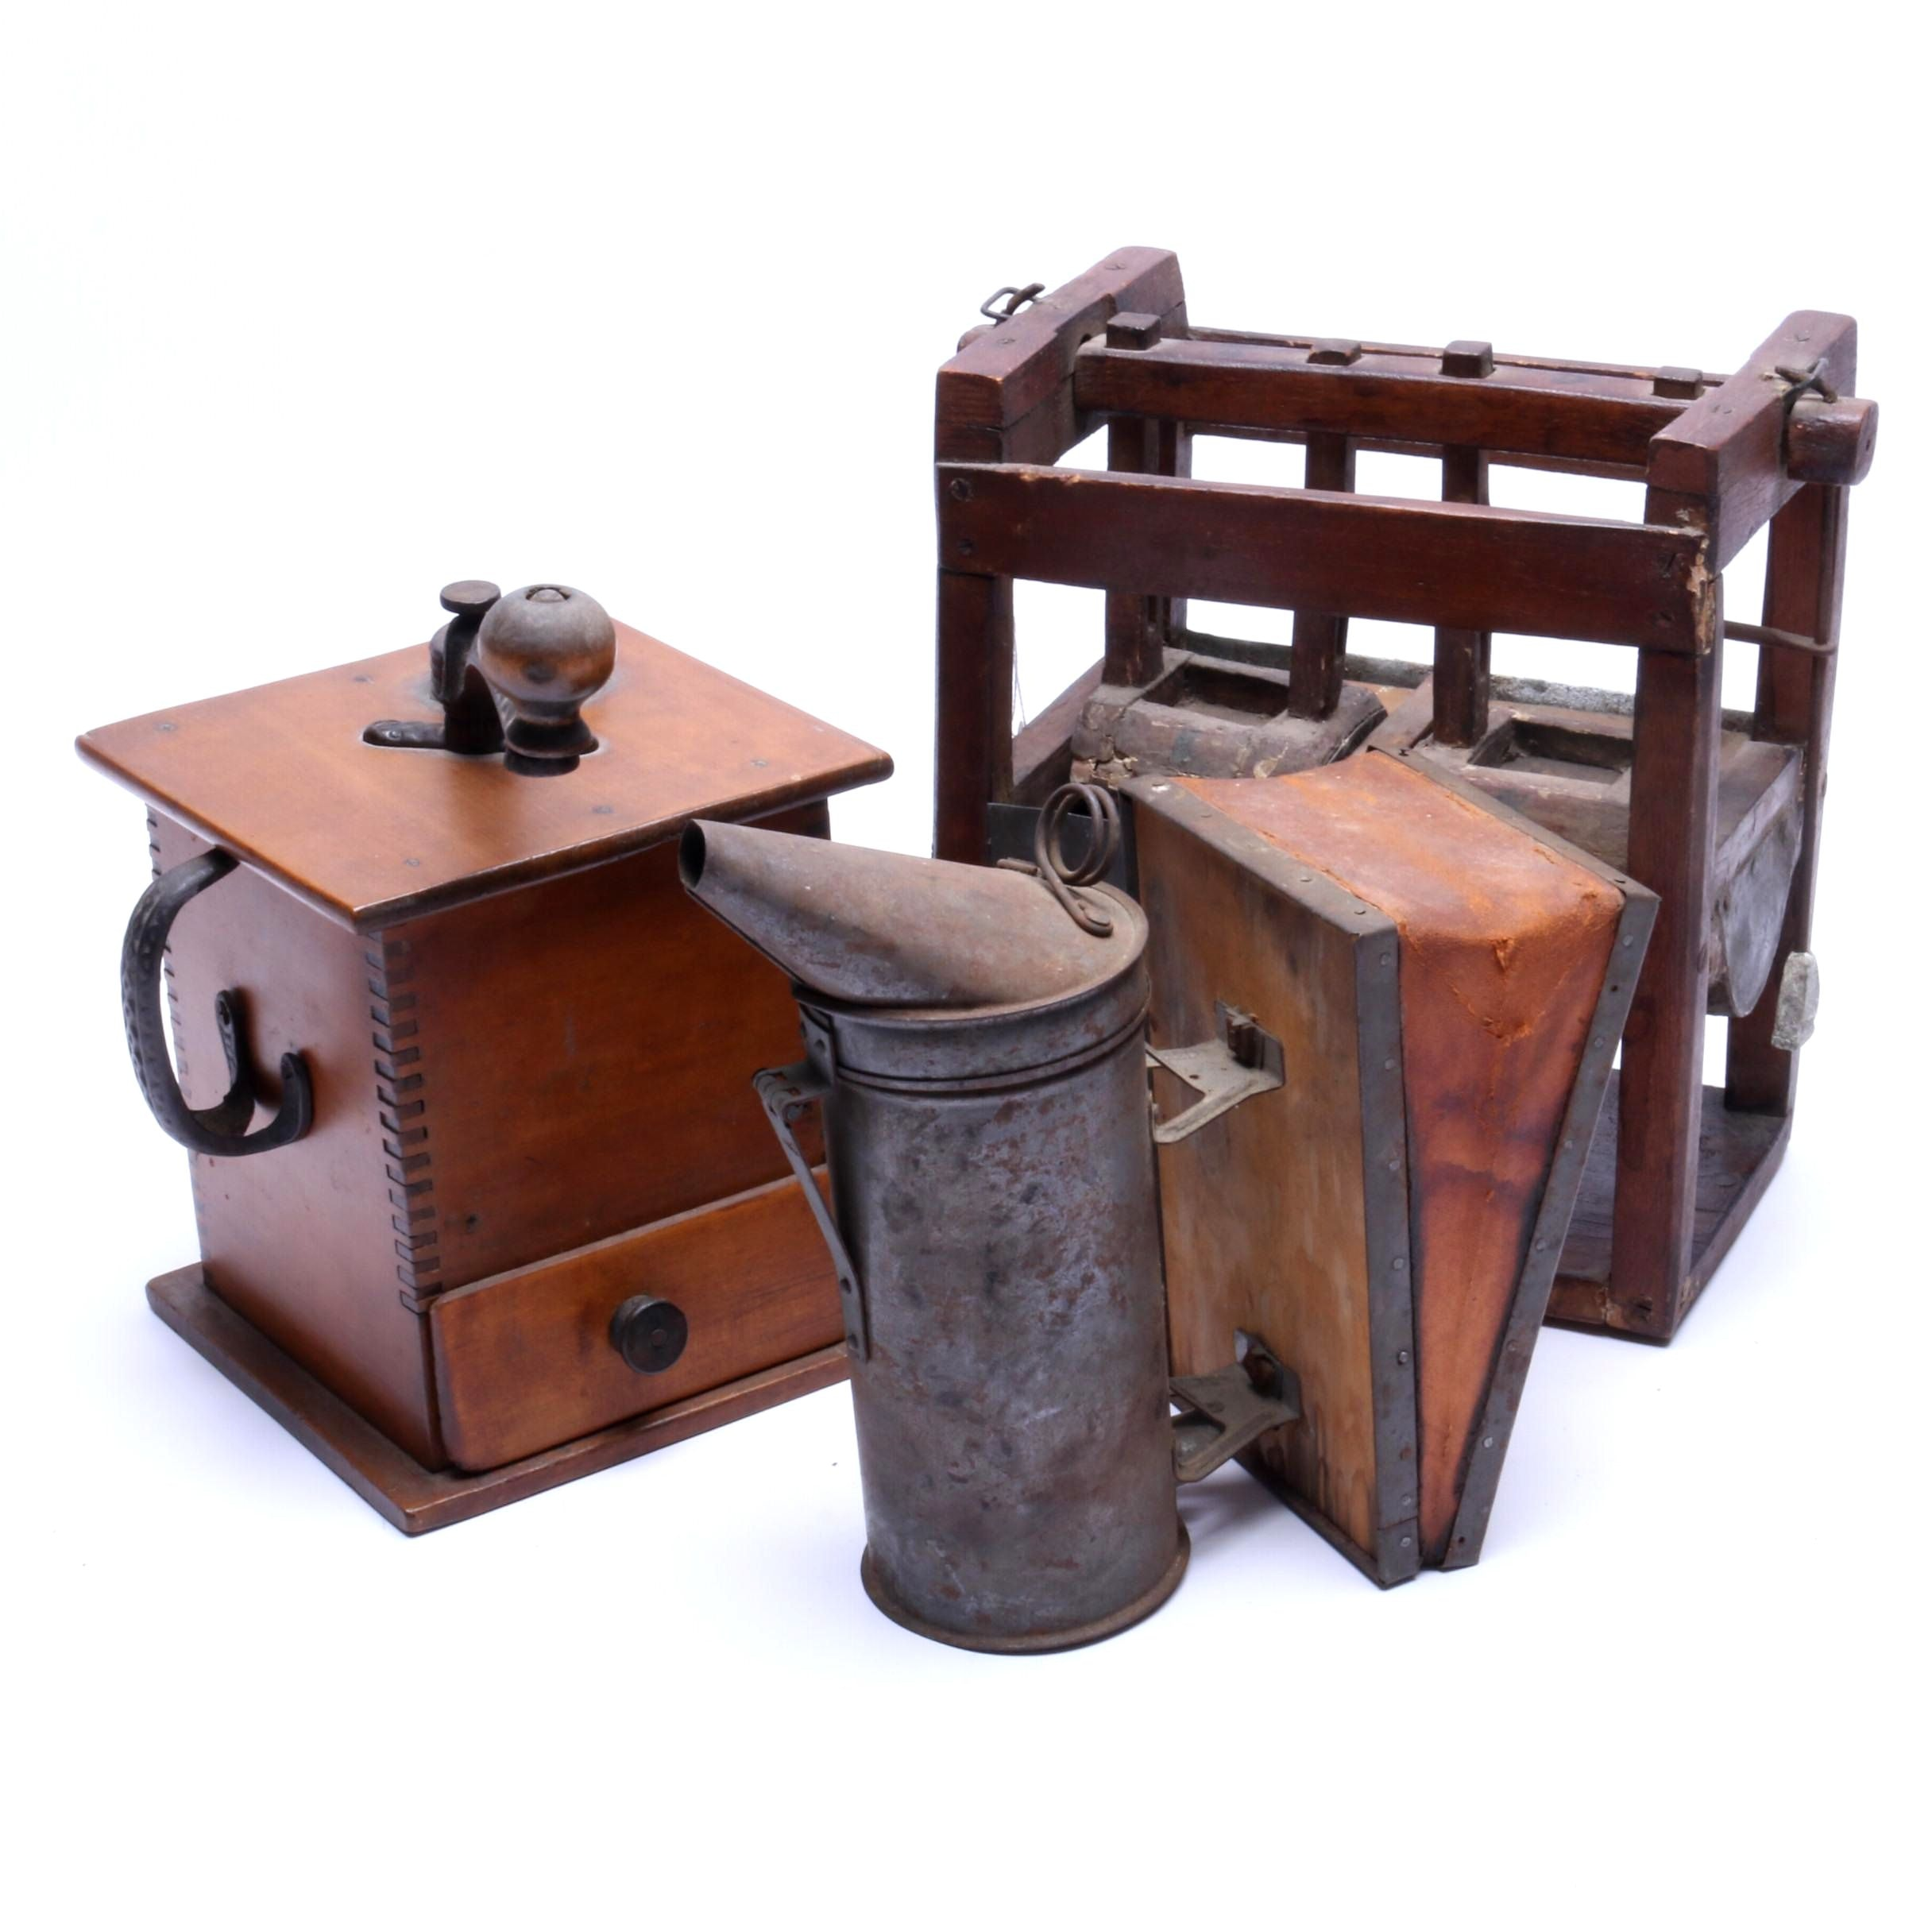 Primitive Food Press, Bee Smoker and Coffee Grinder